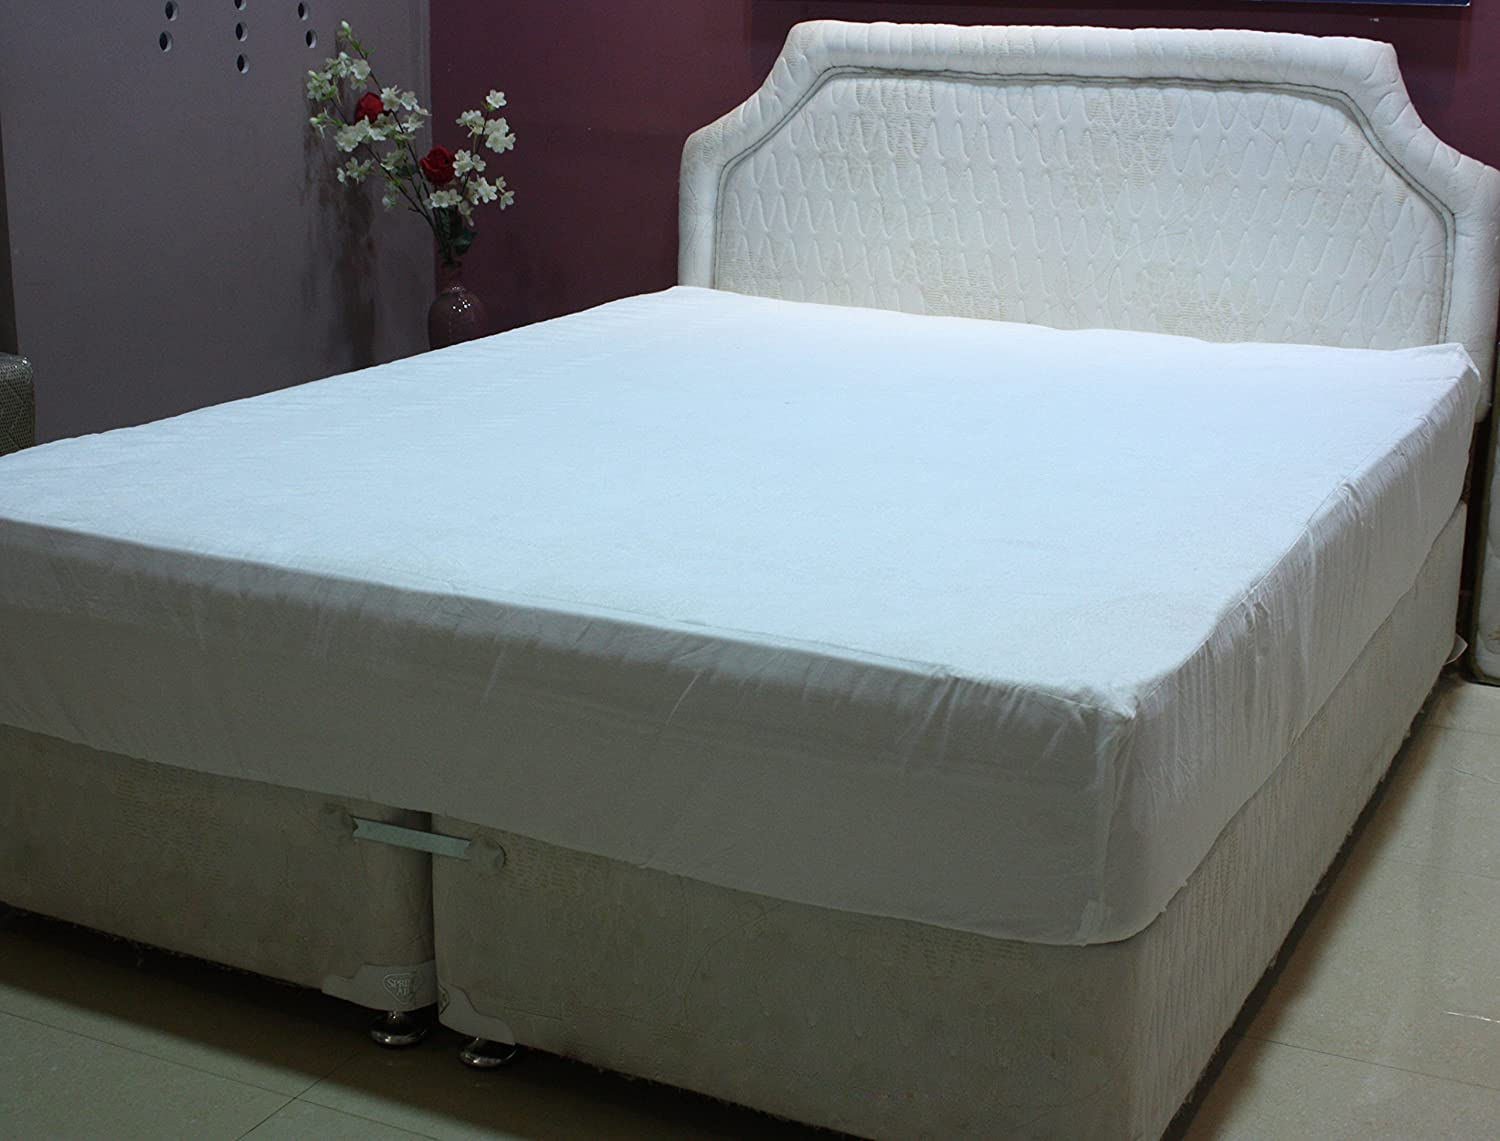 "Trance Home Linen Trance Waterproof Mattress Protector Queen Size 78"" X 60""  -White: Amazon.in: Home & Kitchen"